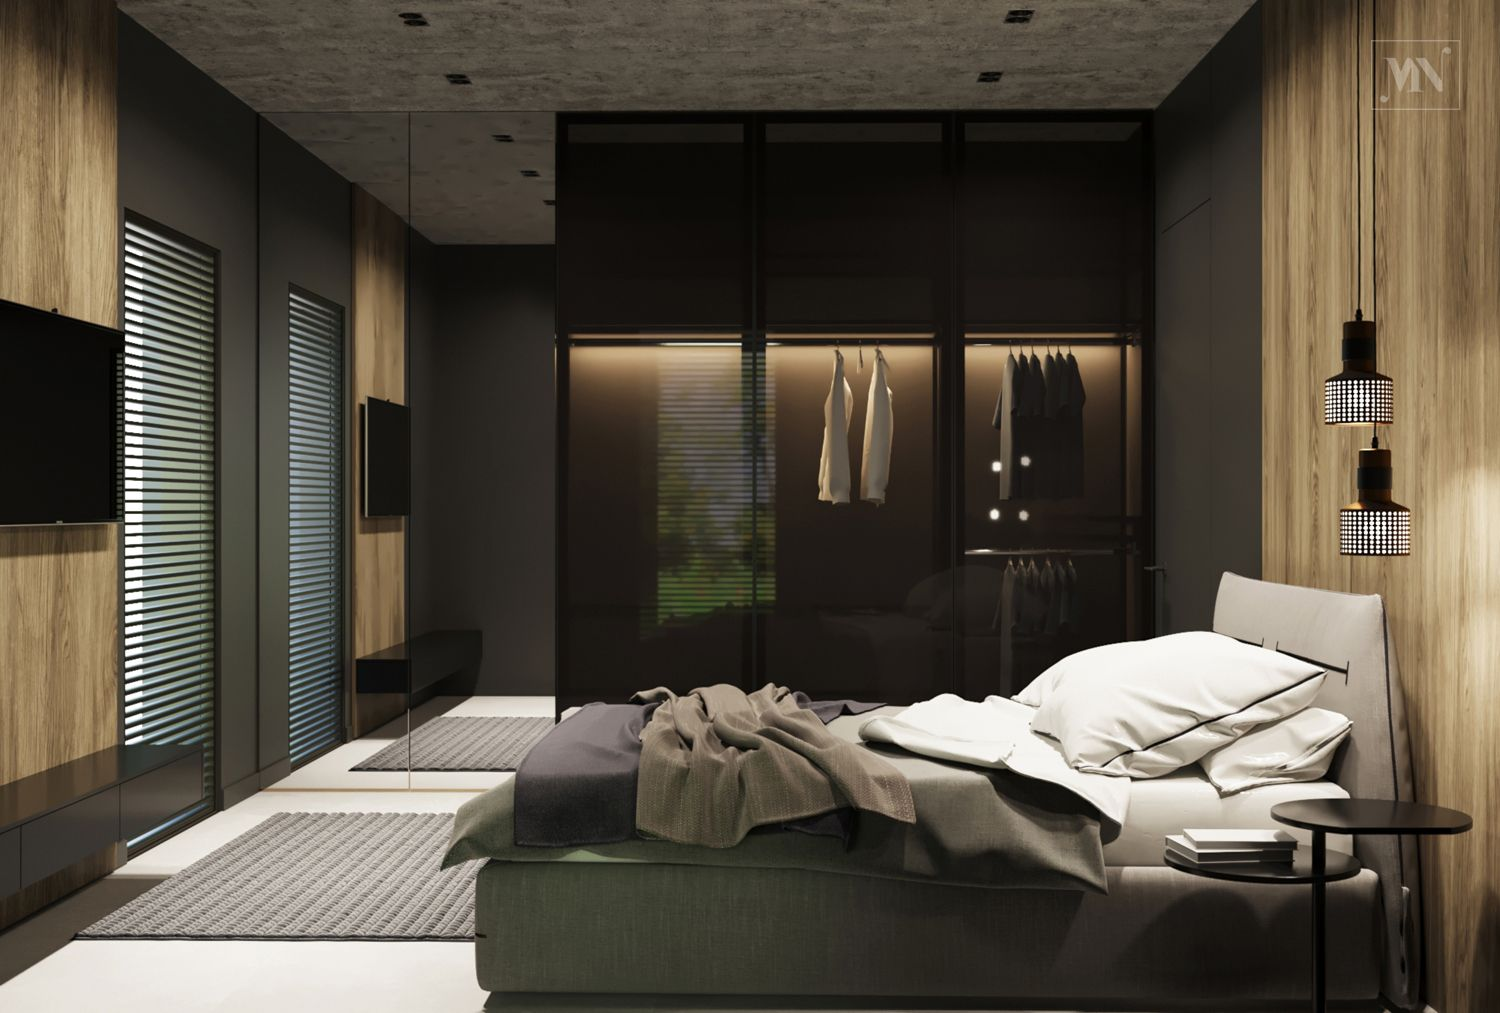 Interior Design House 120 m2Menu0027s Bedroom Design